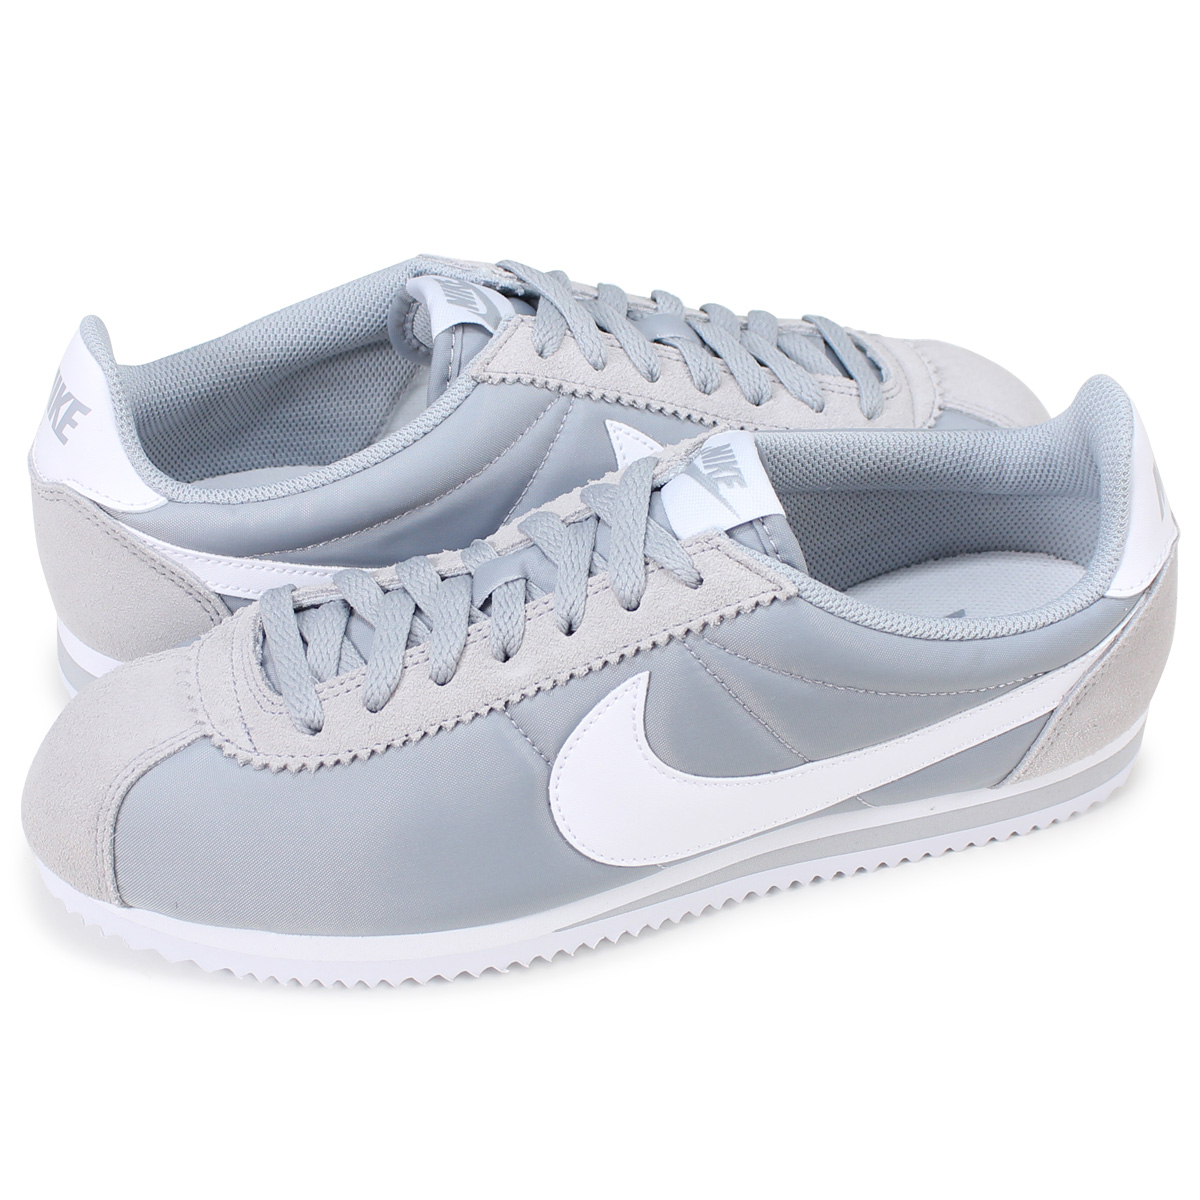 outlet store 68eb0 f9b7b NIKE Nike classic Cortez sneaker CLASSIC CORTEZ NYLON 807472-010 Wolf grey  men's women's shoes grey